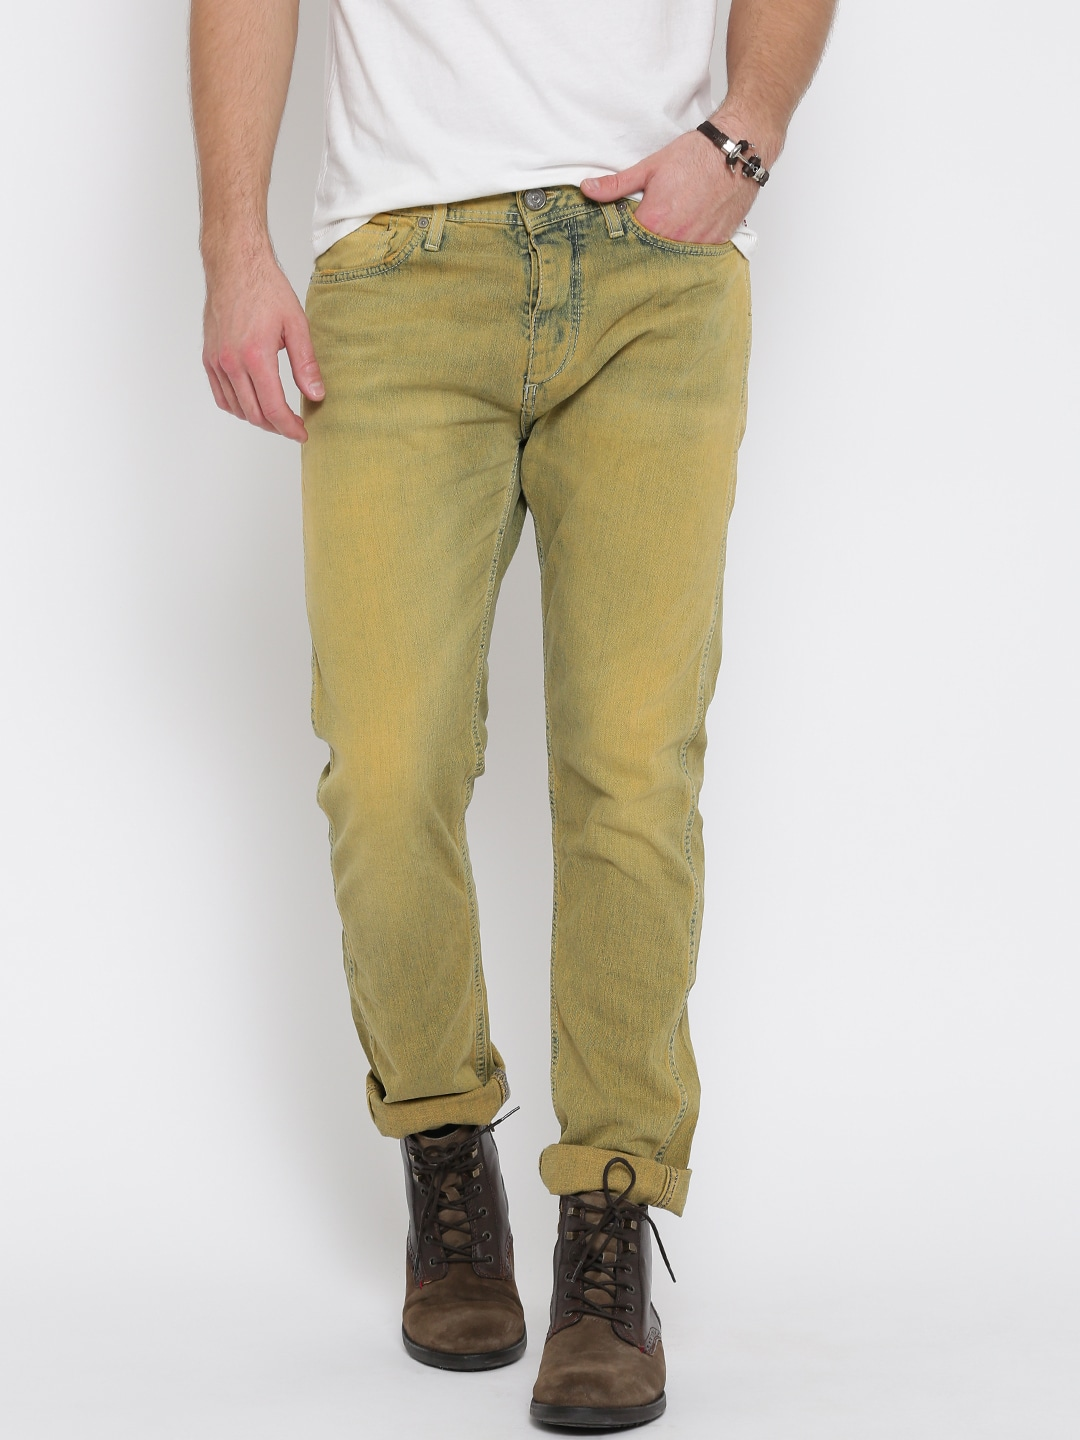 Coloured Jeans For Men - Buy Coloured Jeans For Men online in India